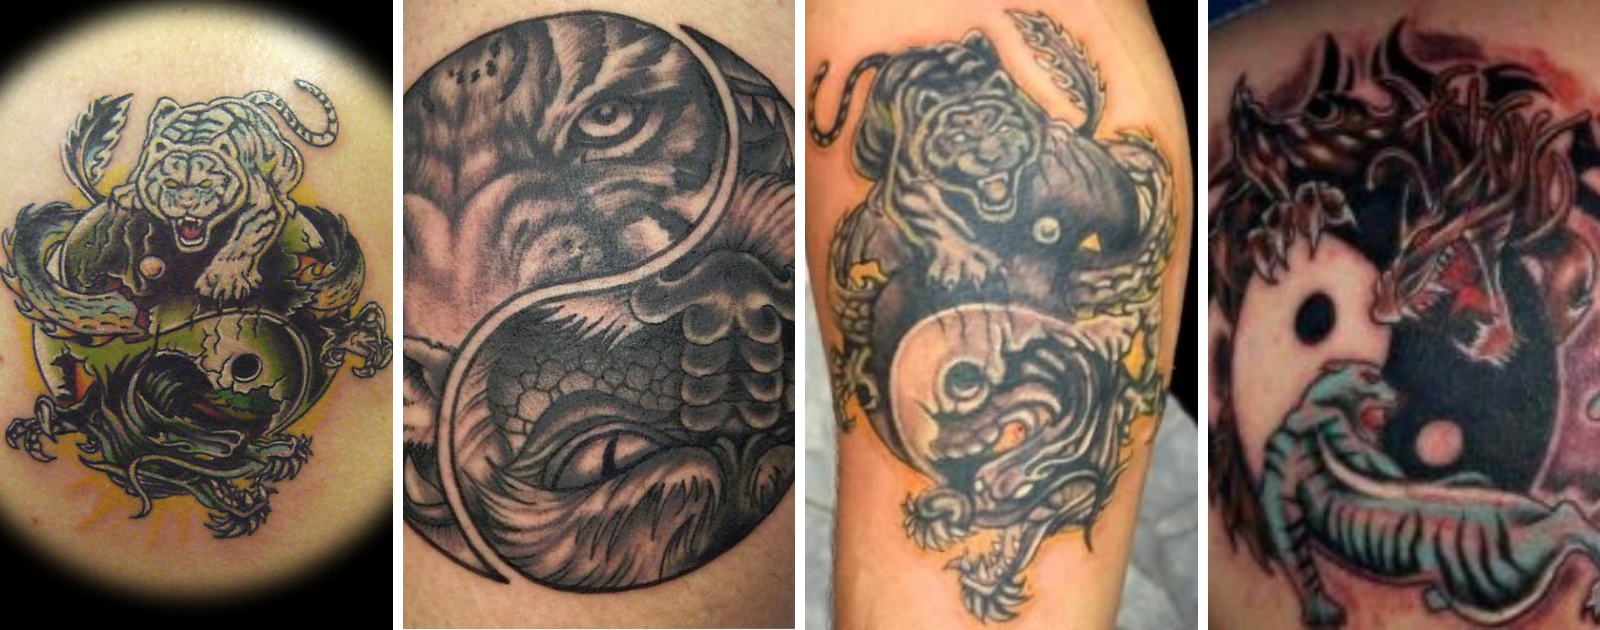 yin yang tiger dragon tattoo ideas